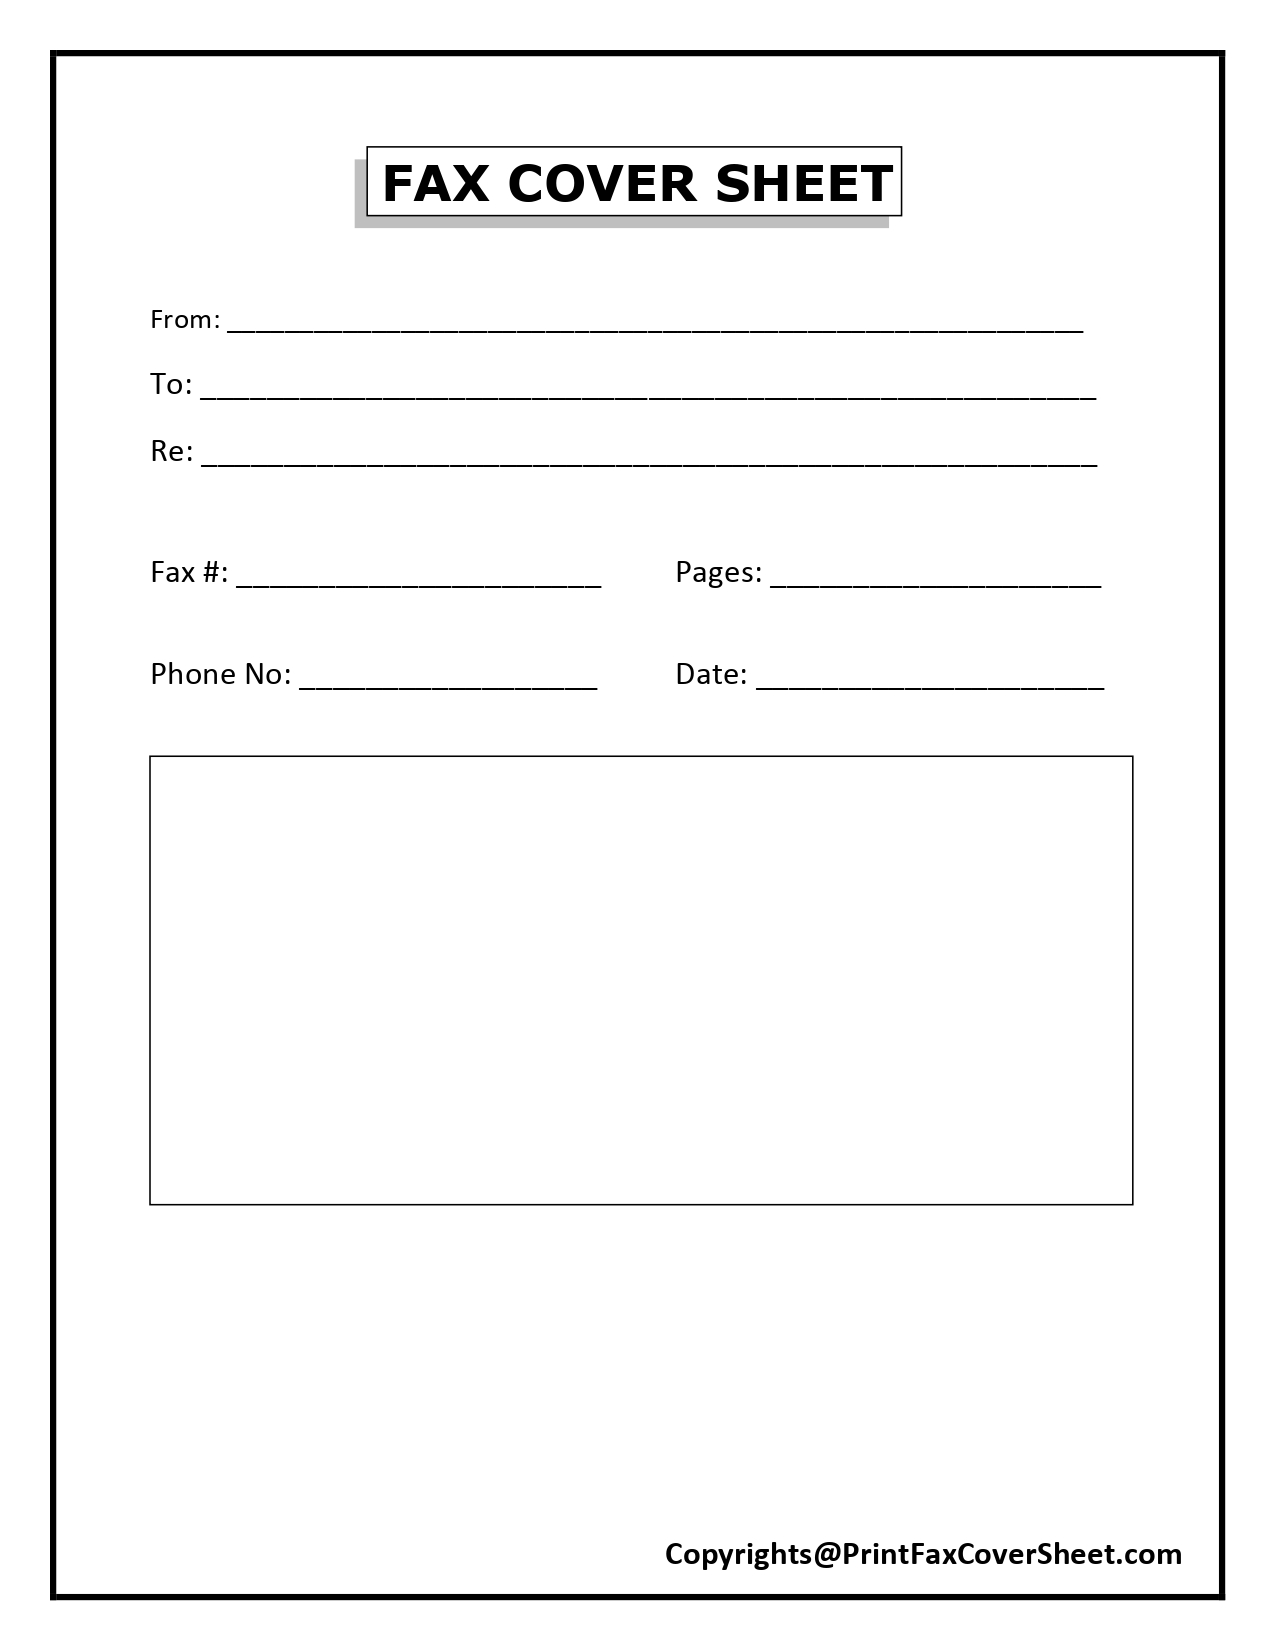 Free Blank Printable Fax Cover Sheet Template Pdf Word Fax Cover Sheet Template